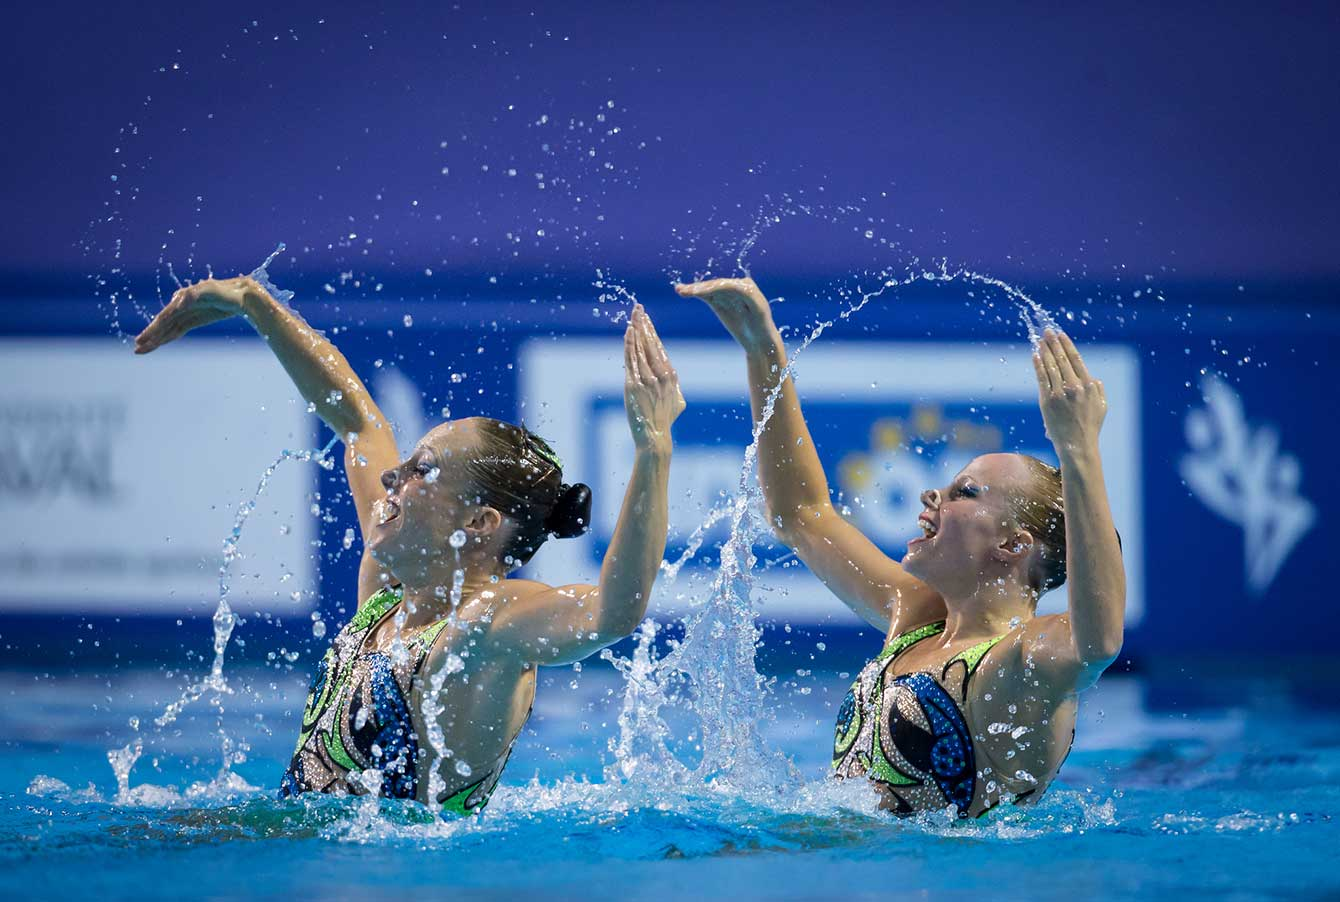 Karine Thomas (left) and Jacqueline Simoneau seen at the 2015 Synchronized Swimming World Cup. | Photo: Synchro Canada